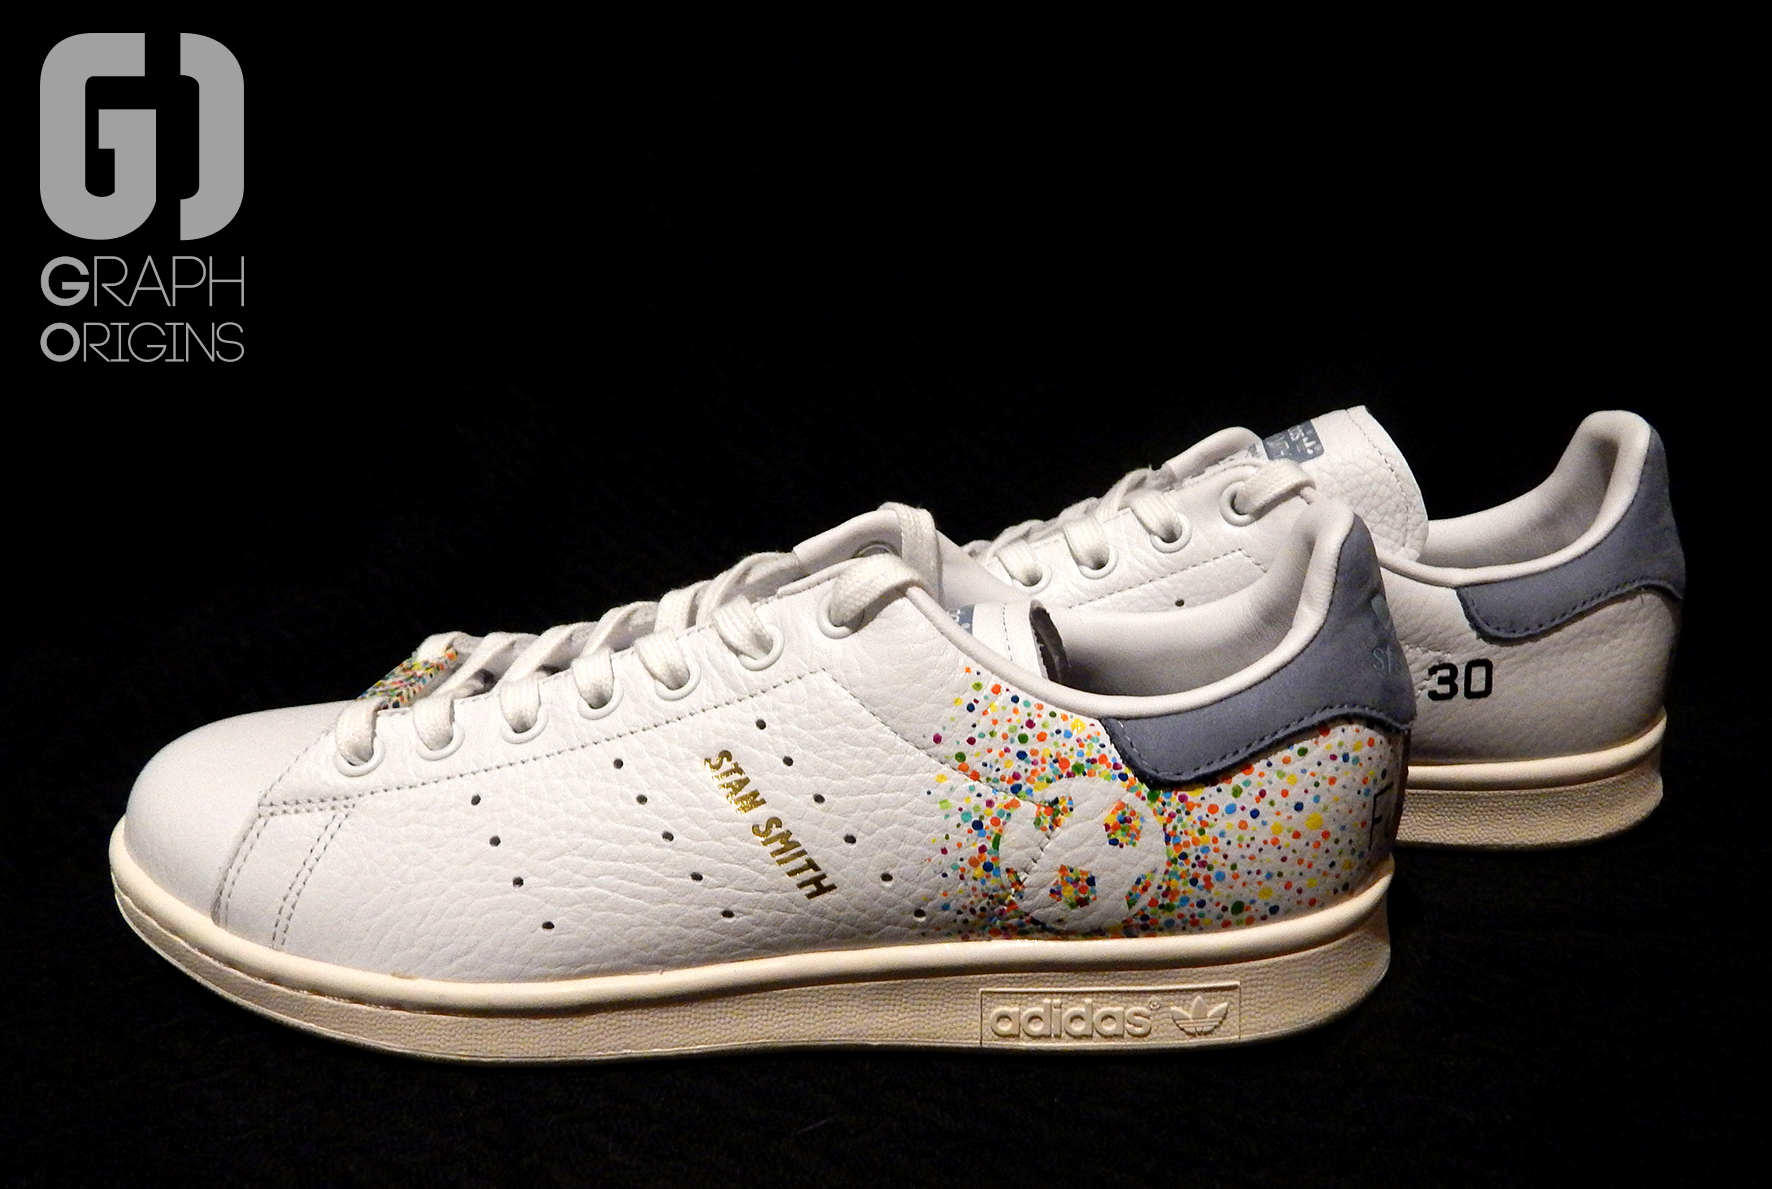 Custom baskets adidas Stan Smith Feliz Cumple graph origins 1